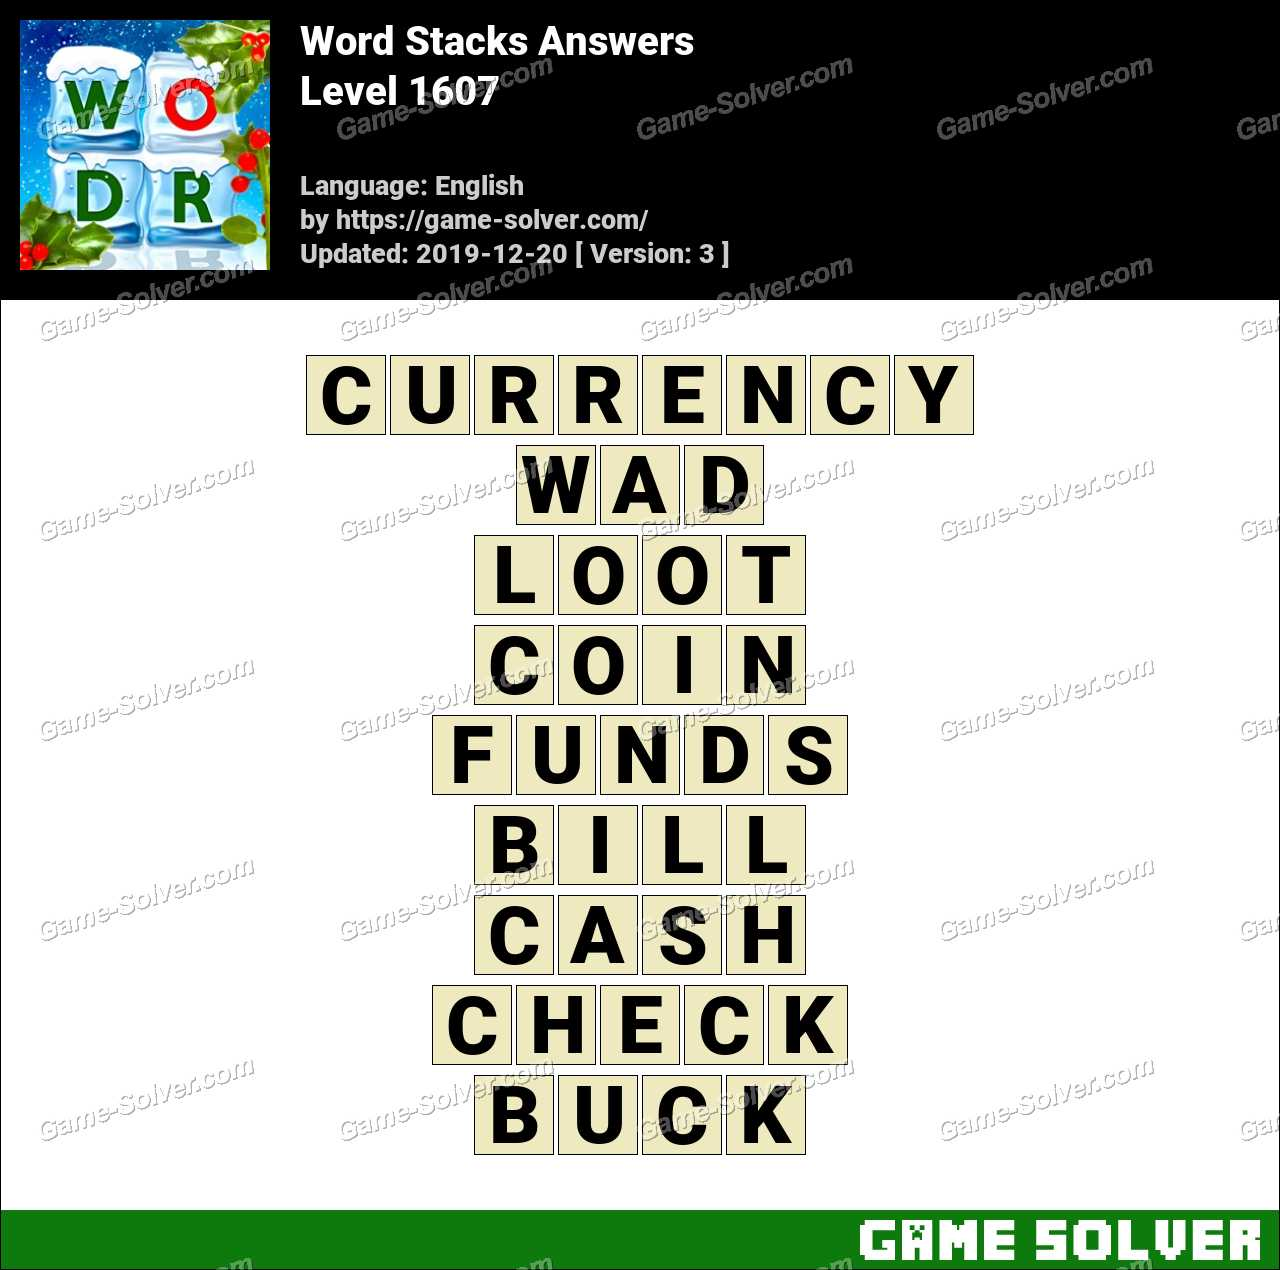 Word Stacks Level 1607 Answers